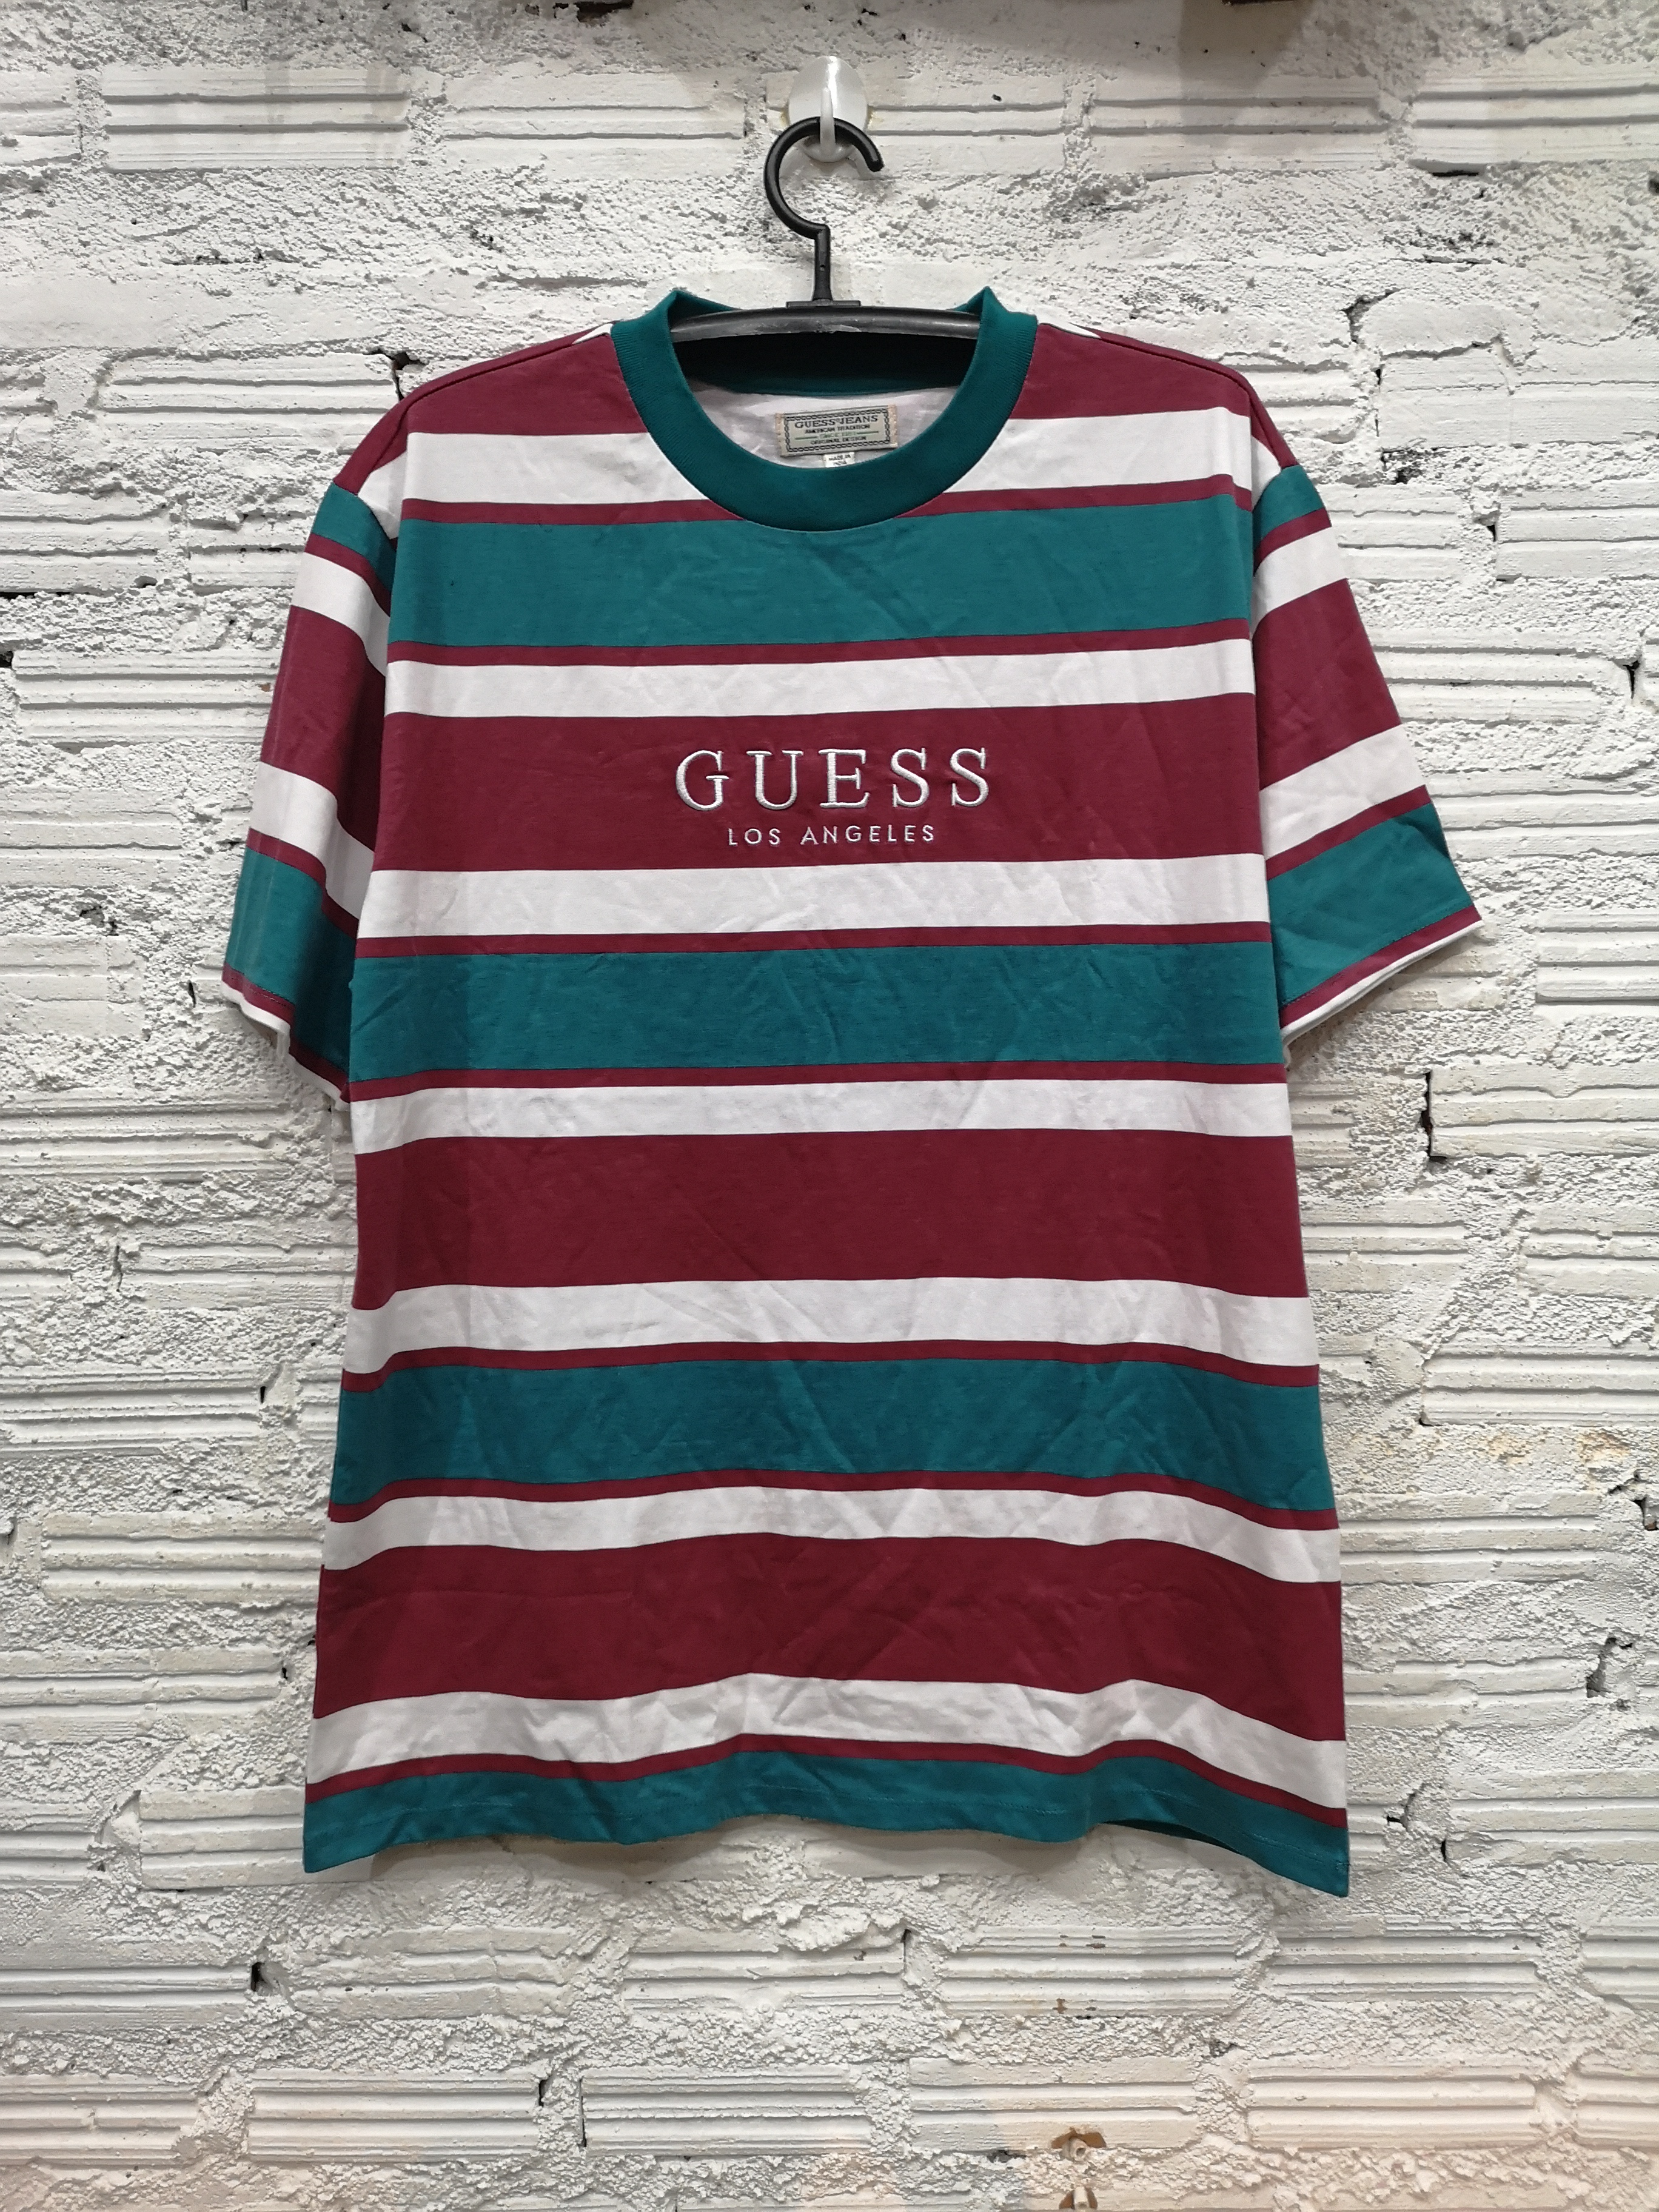 3f6428df14 Guess Guess Jeans Los Angeles Striped T Shirt Capsule Tee Red Teal ...